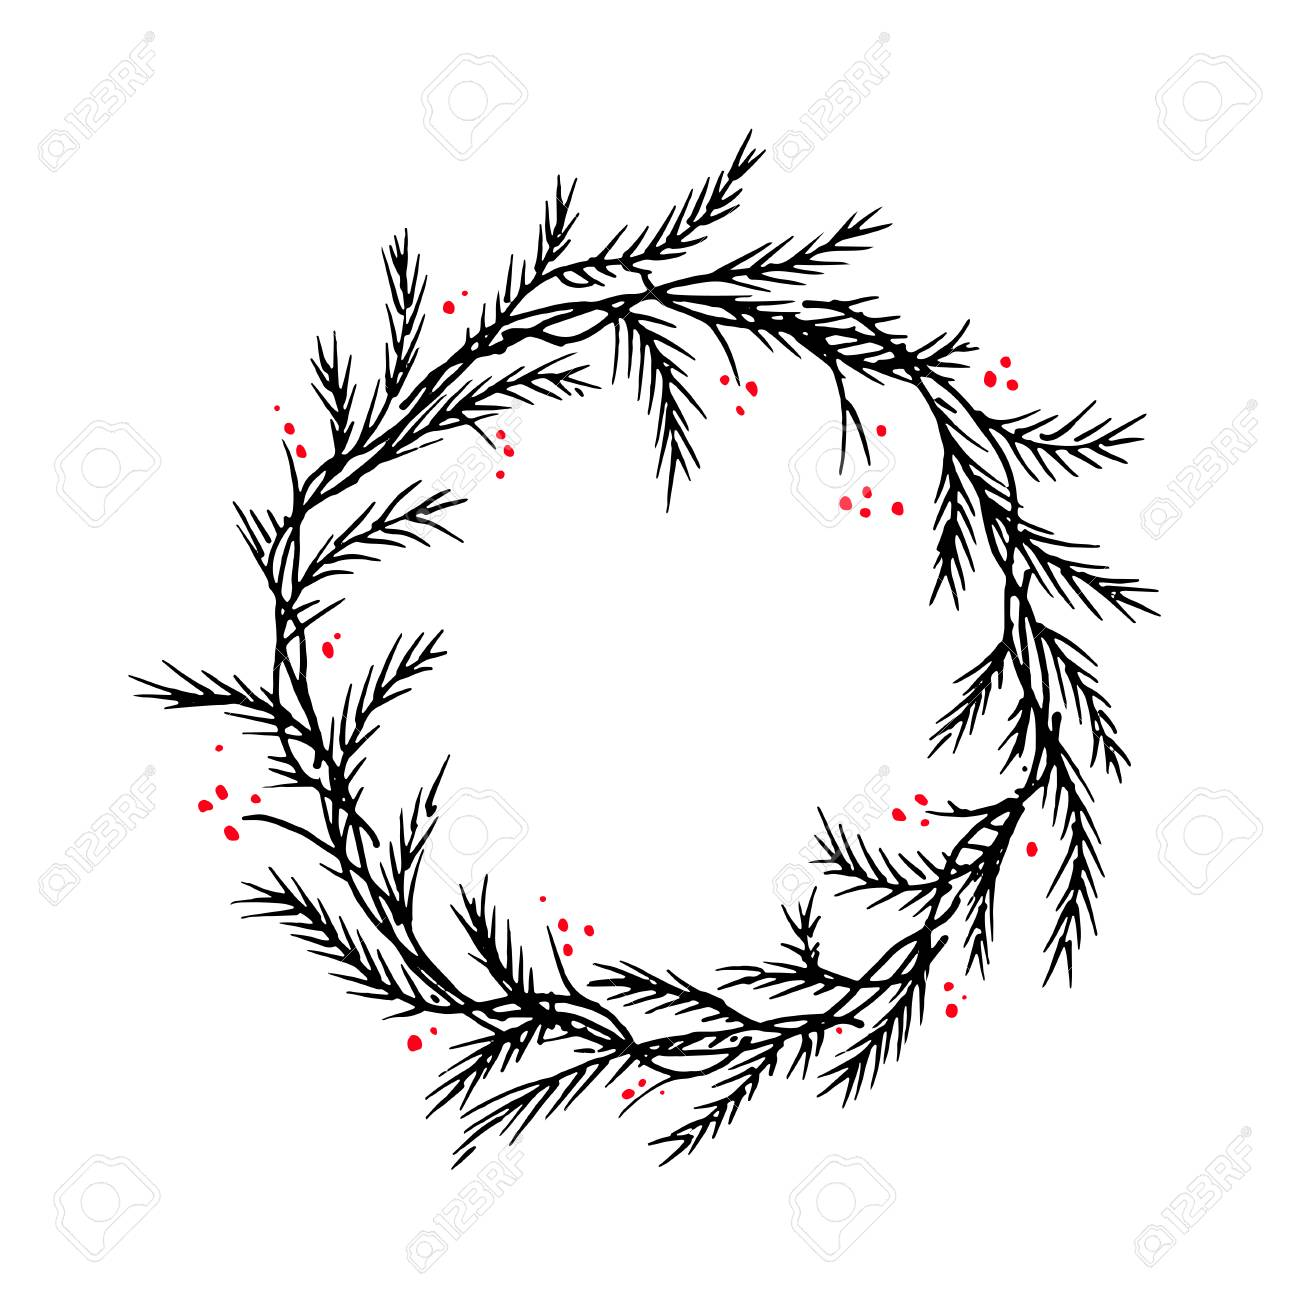 Christmas Wreath Silhouette.Vector Silhouette Christmas Wreath Frame Or Border